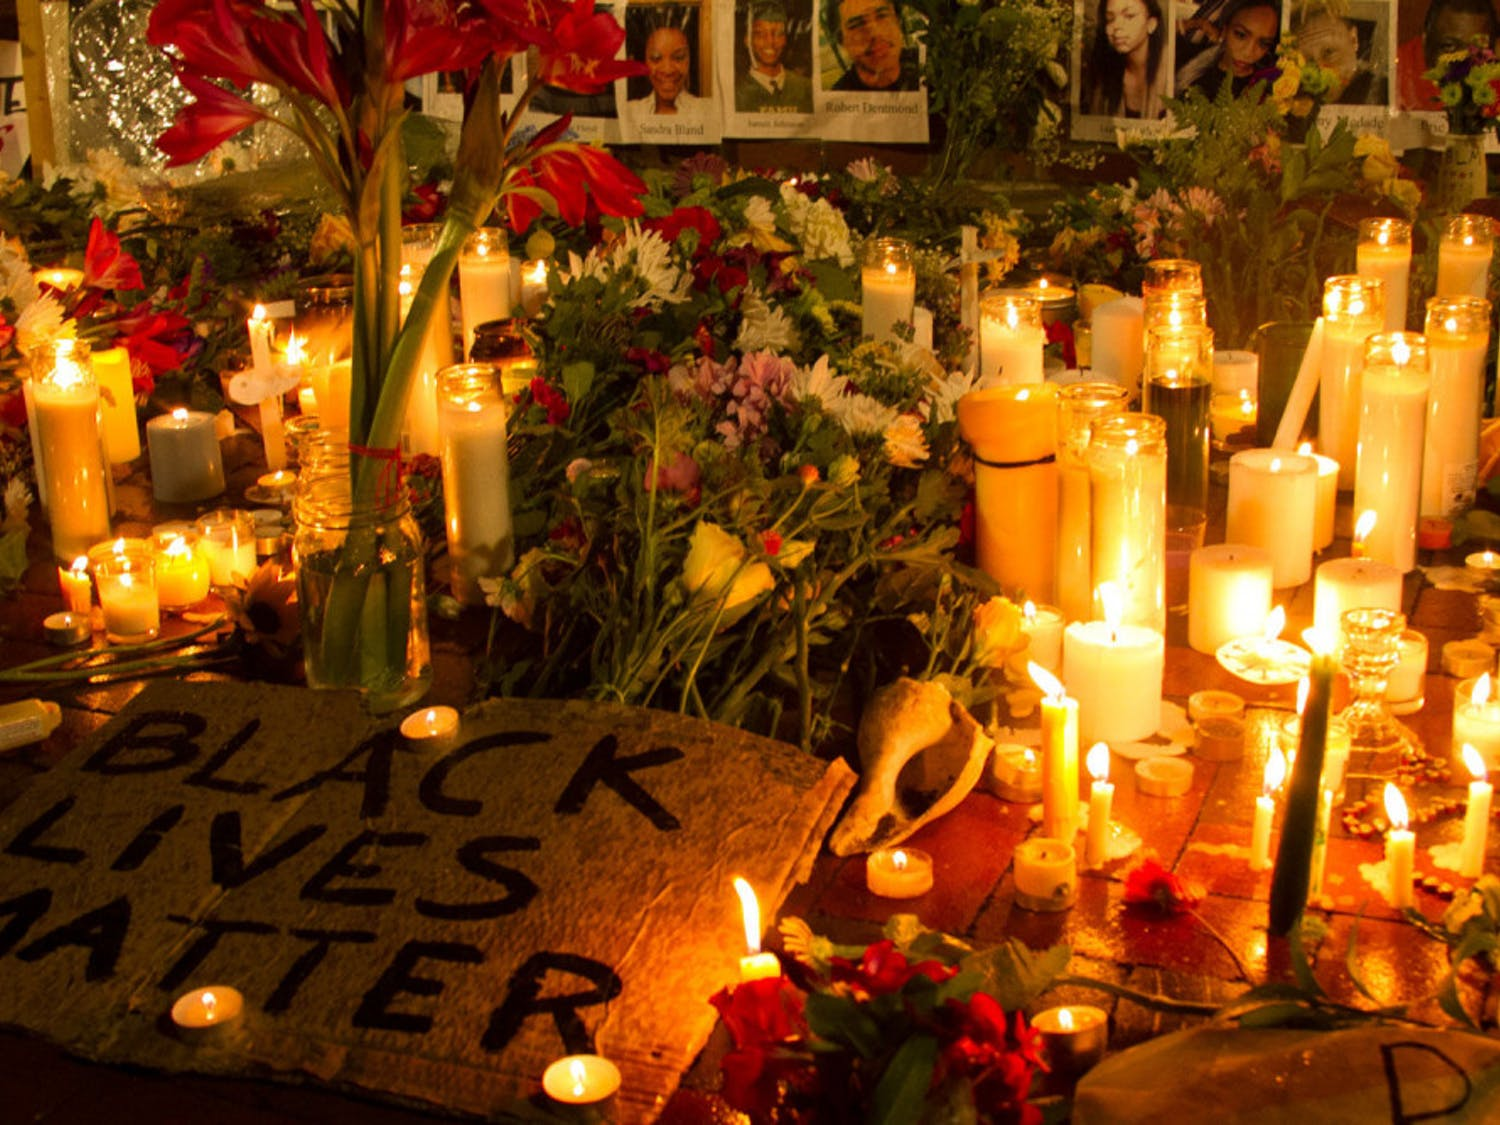 A vigil was held on June 3 in honor of George Floyd and other lives lost from the black community. Attendees grieved before analtar made of flowers, candles and photos of victims.